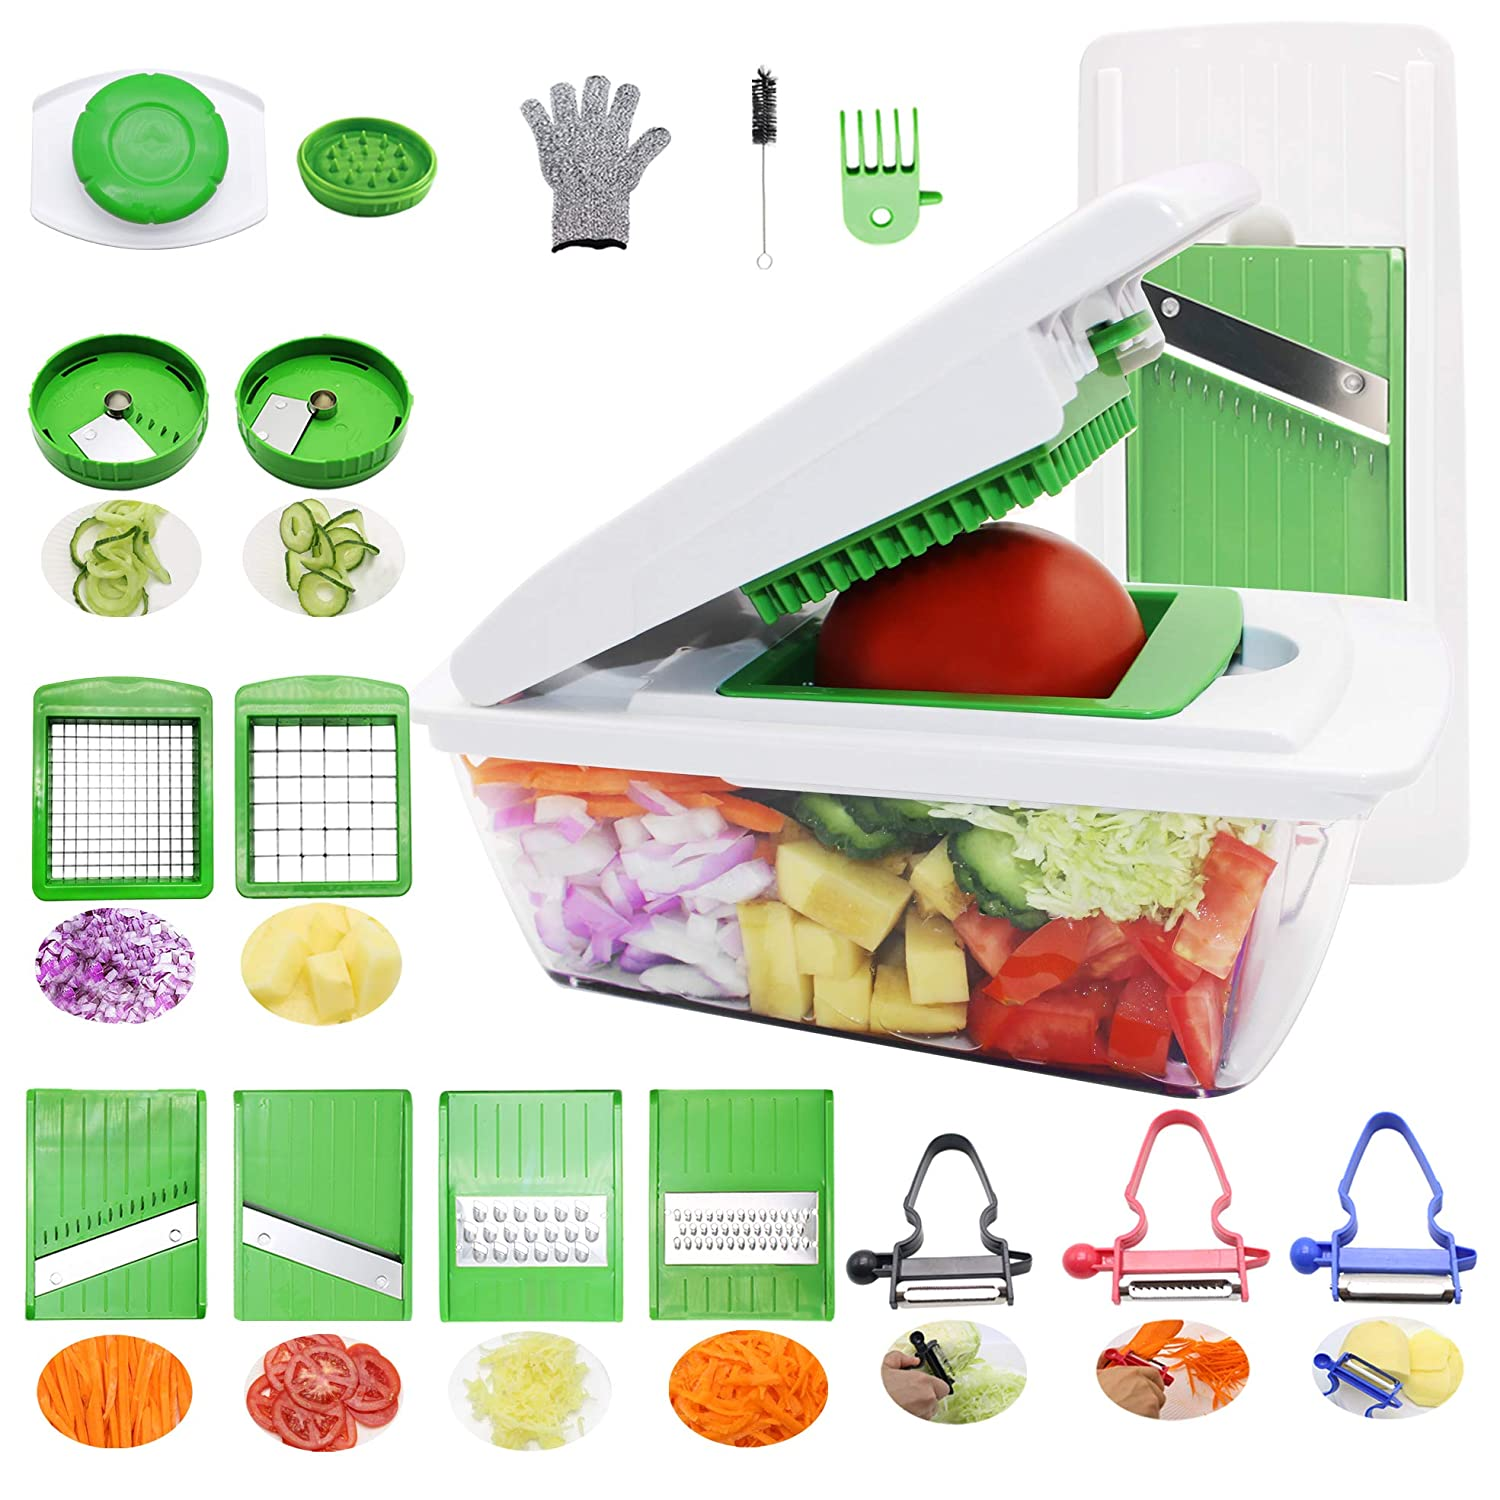 RTMAXCO Vegetable Chopper Mandoline Slicer Dicer Onion chopper Cutter Grater Food Chopper, Fruit, Vegetables Cheese Cutter, All In 1 Interchangeable Stainless Steel Blades Vegetables slicer